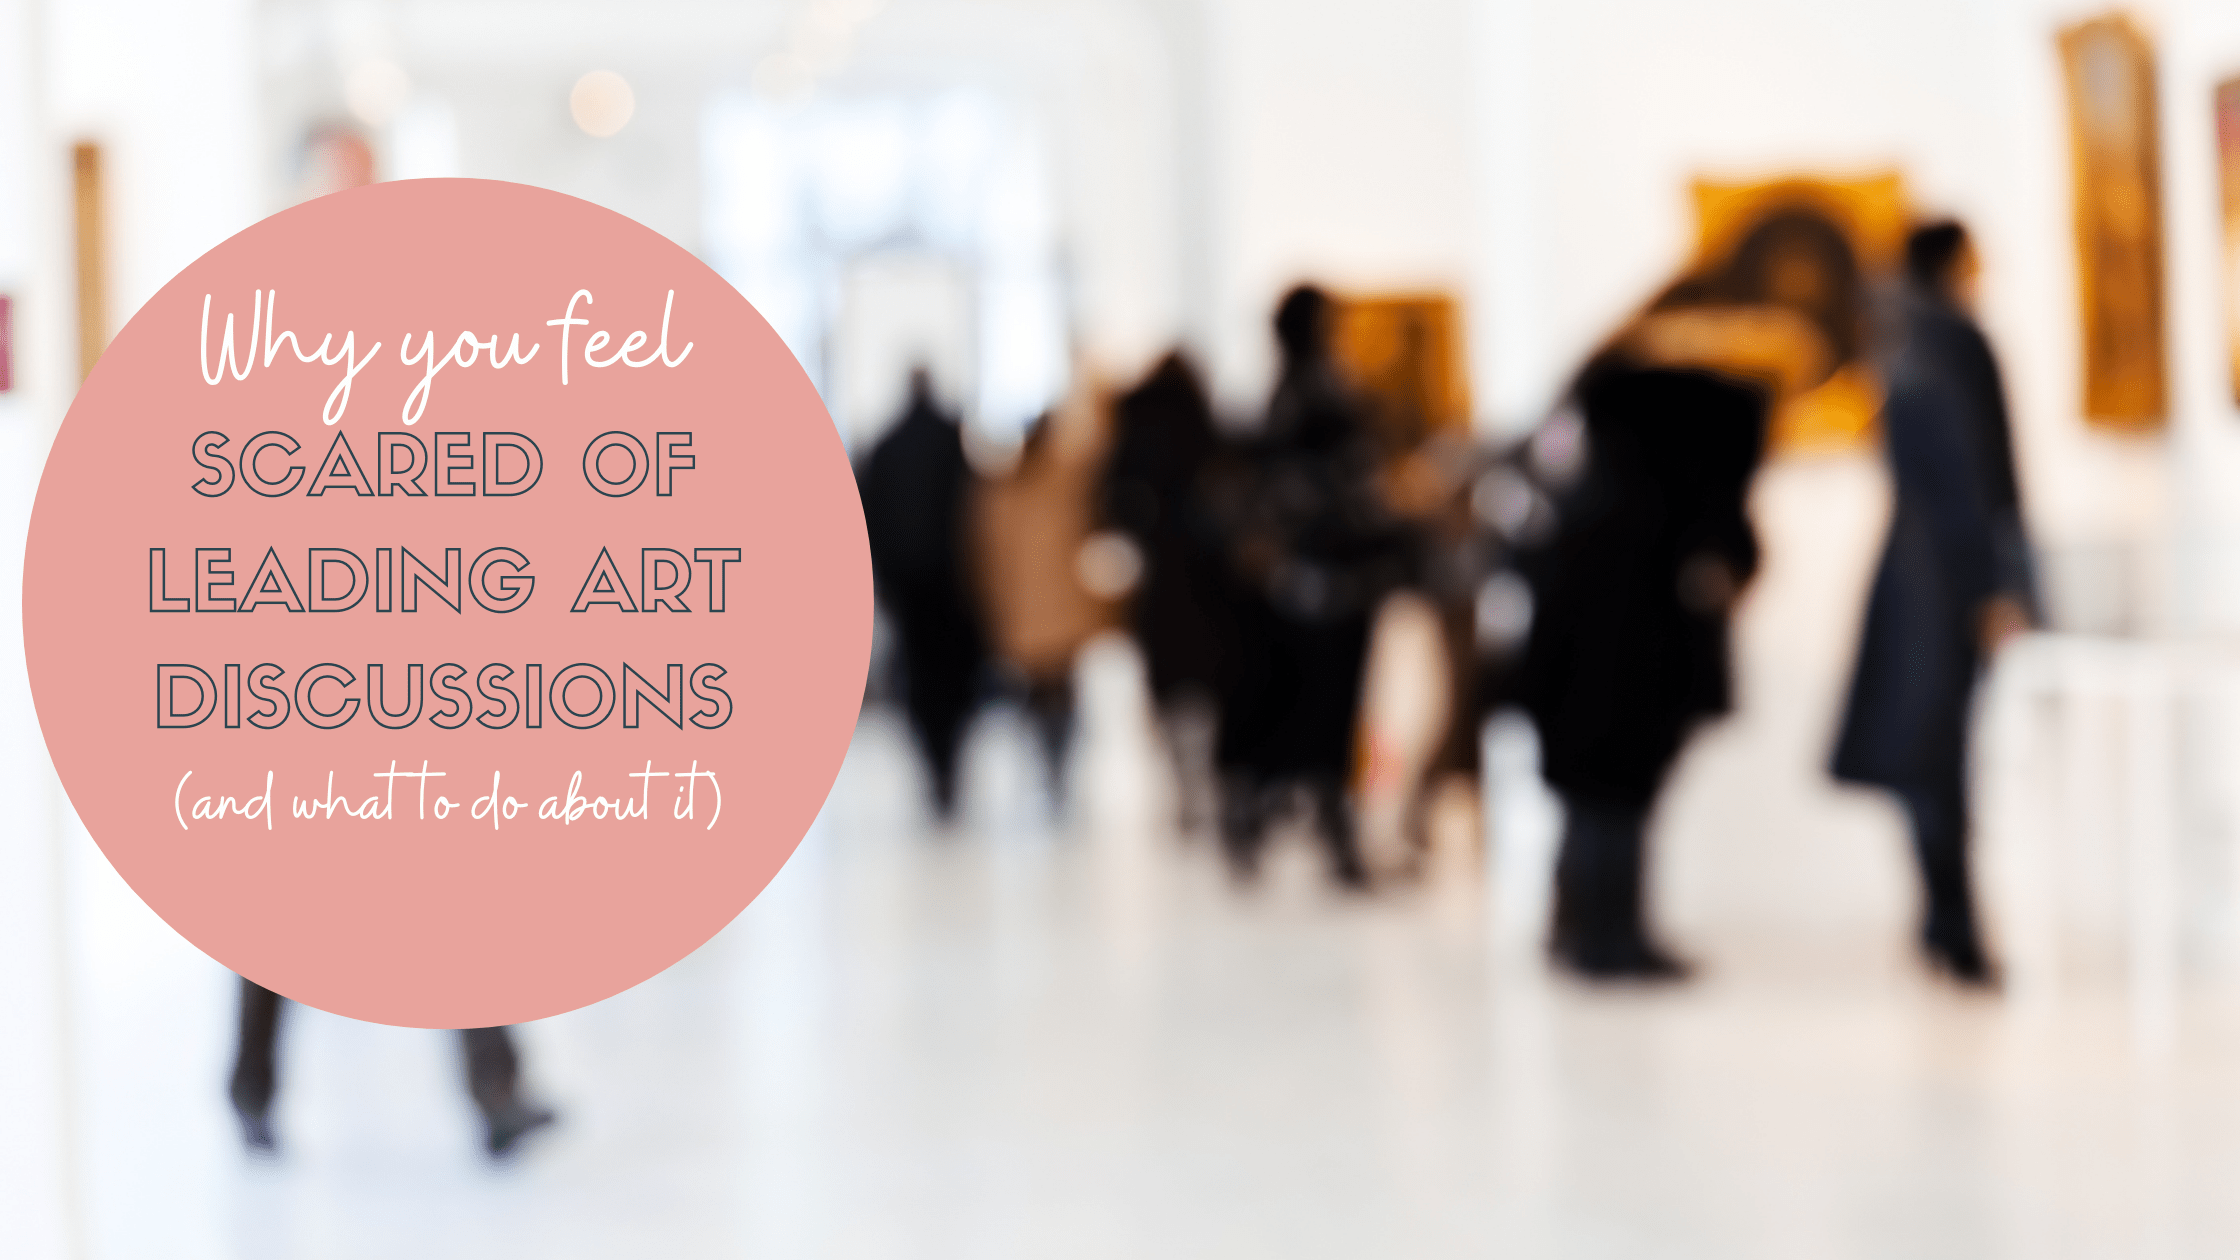 Why you feel scared of leading art discussions (and what to do about it)